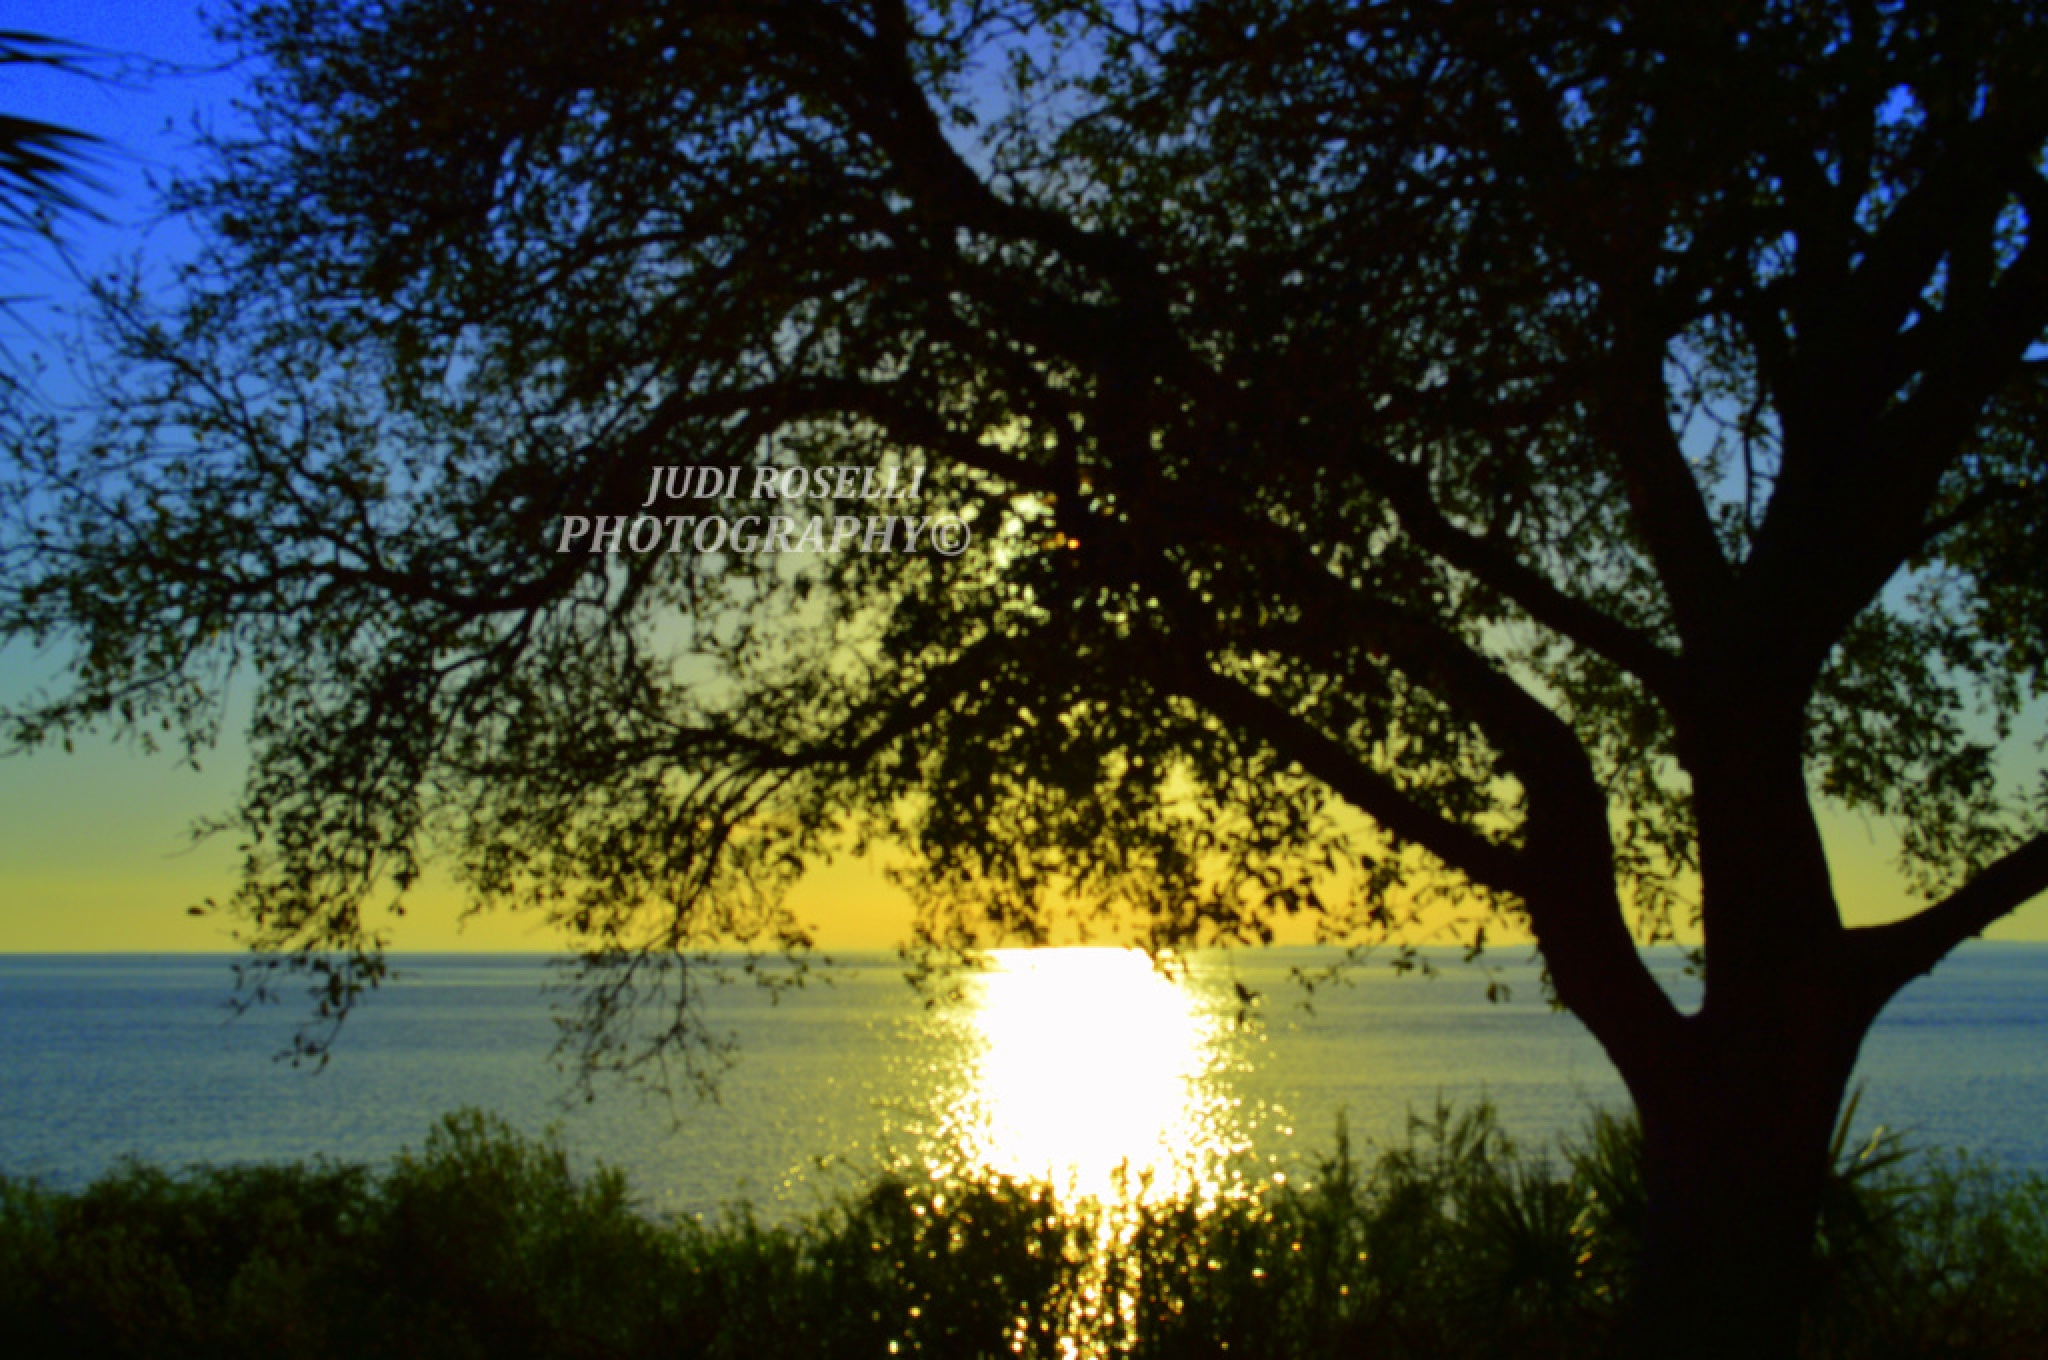 SUNSET FROM A TREE'S VIEW by JUDI ROSELLI